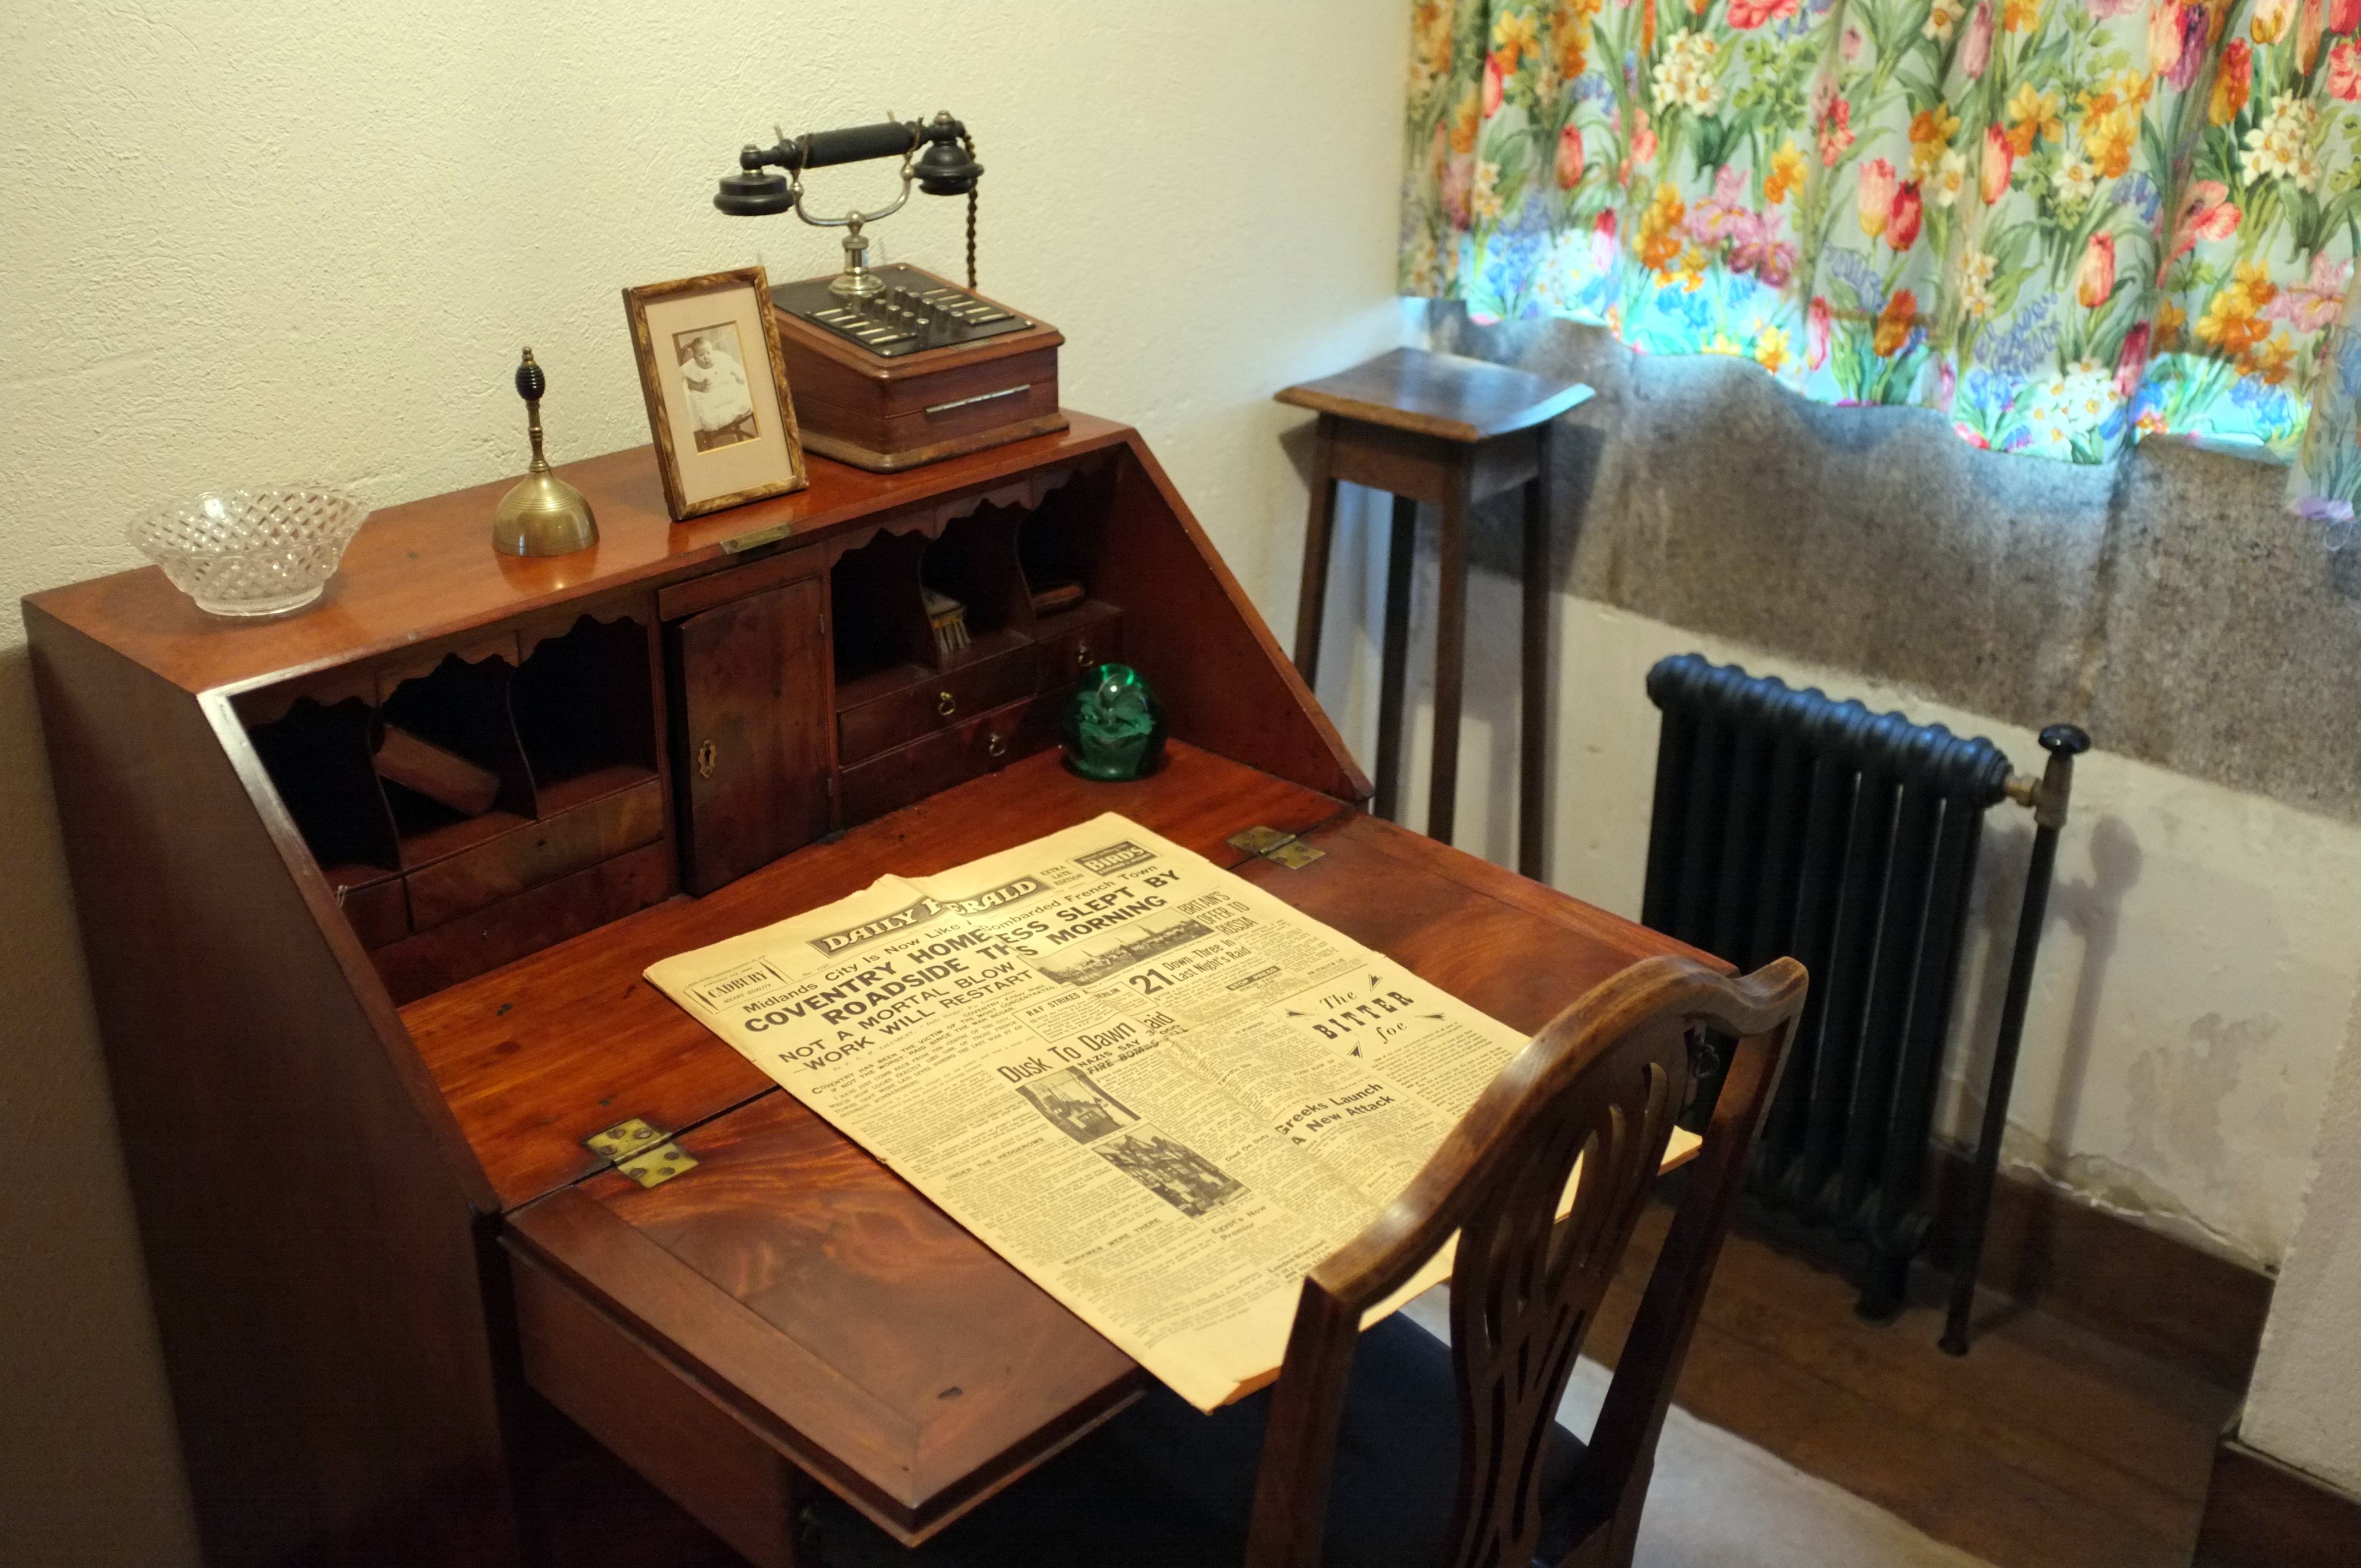 Amazing photo of File:Writing Desk (8257336503).jpg Wikimedia Commons with #763B1E color and 4288x2848 pixels